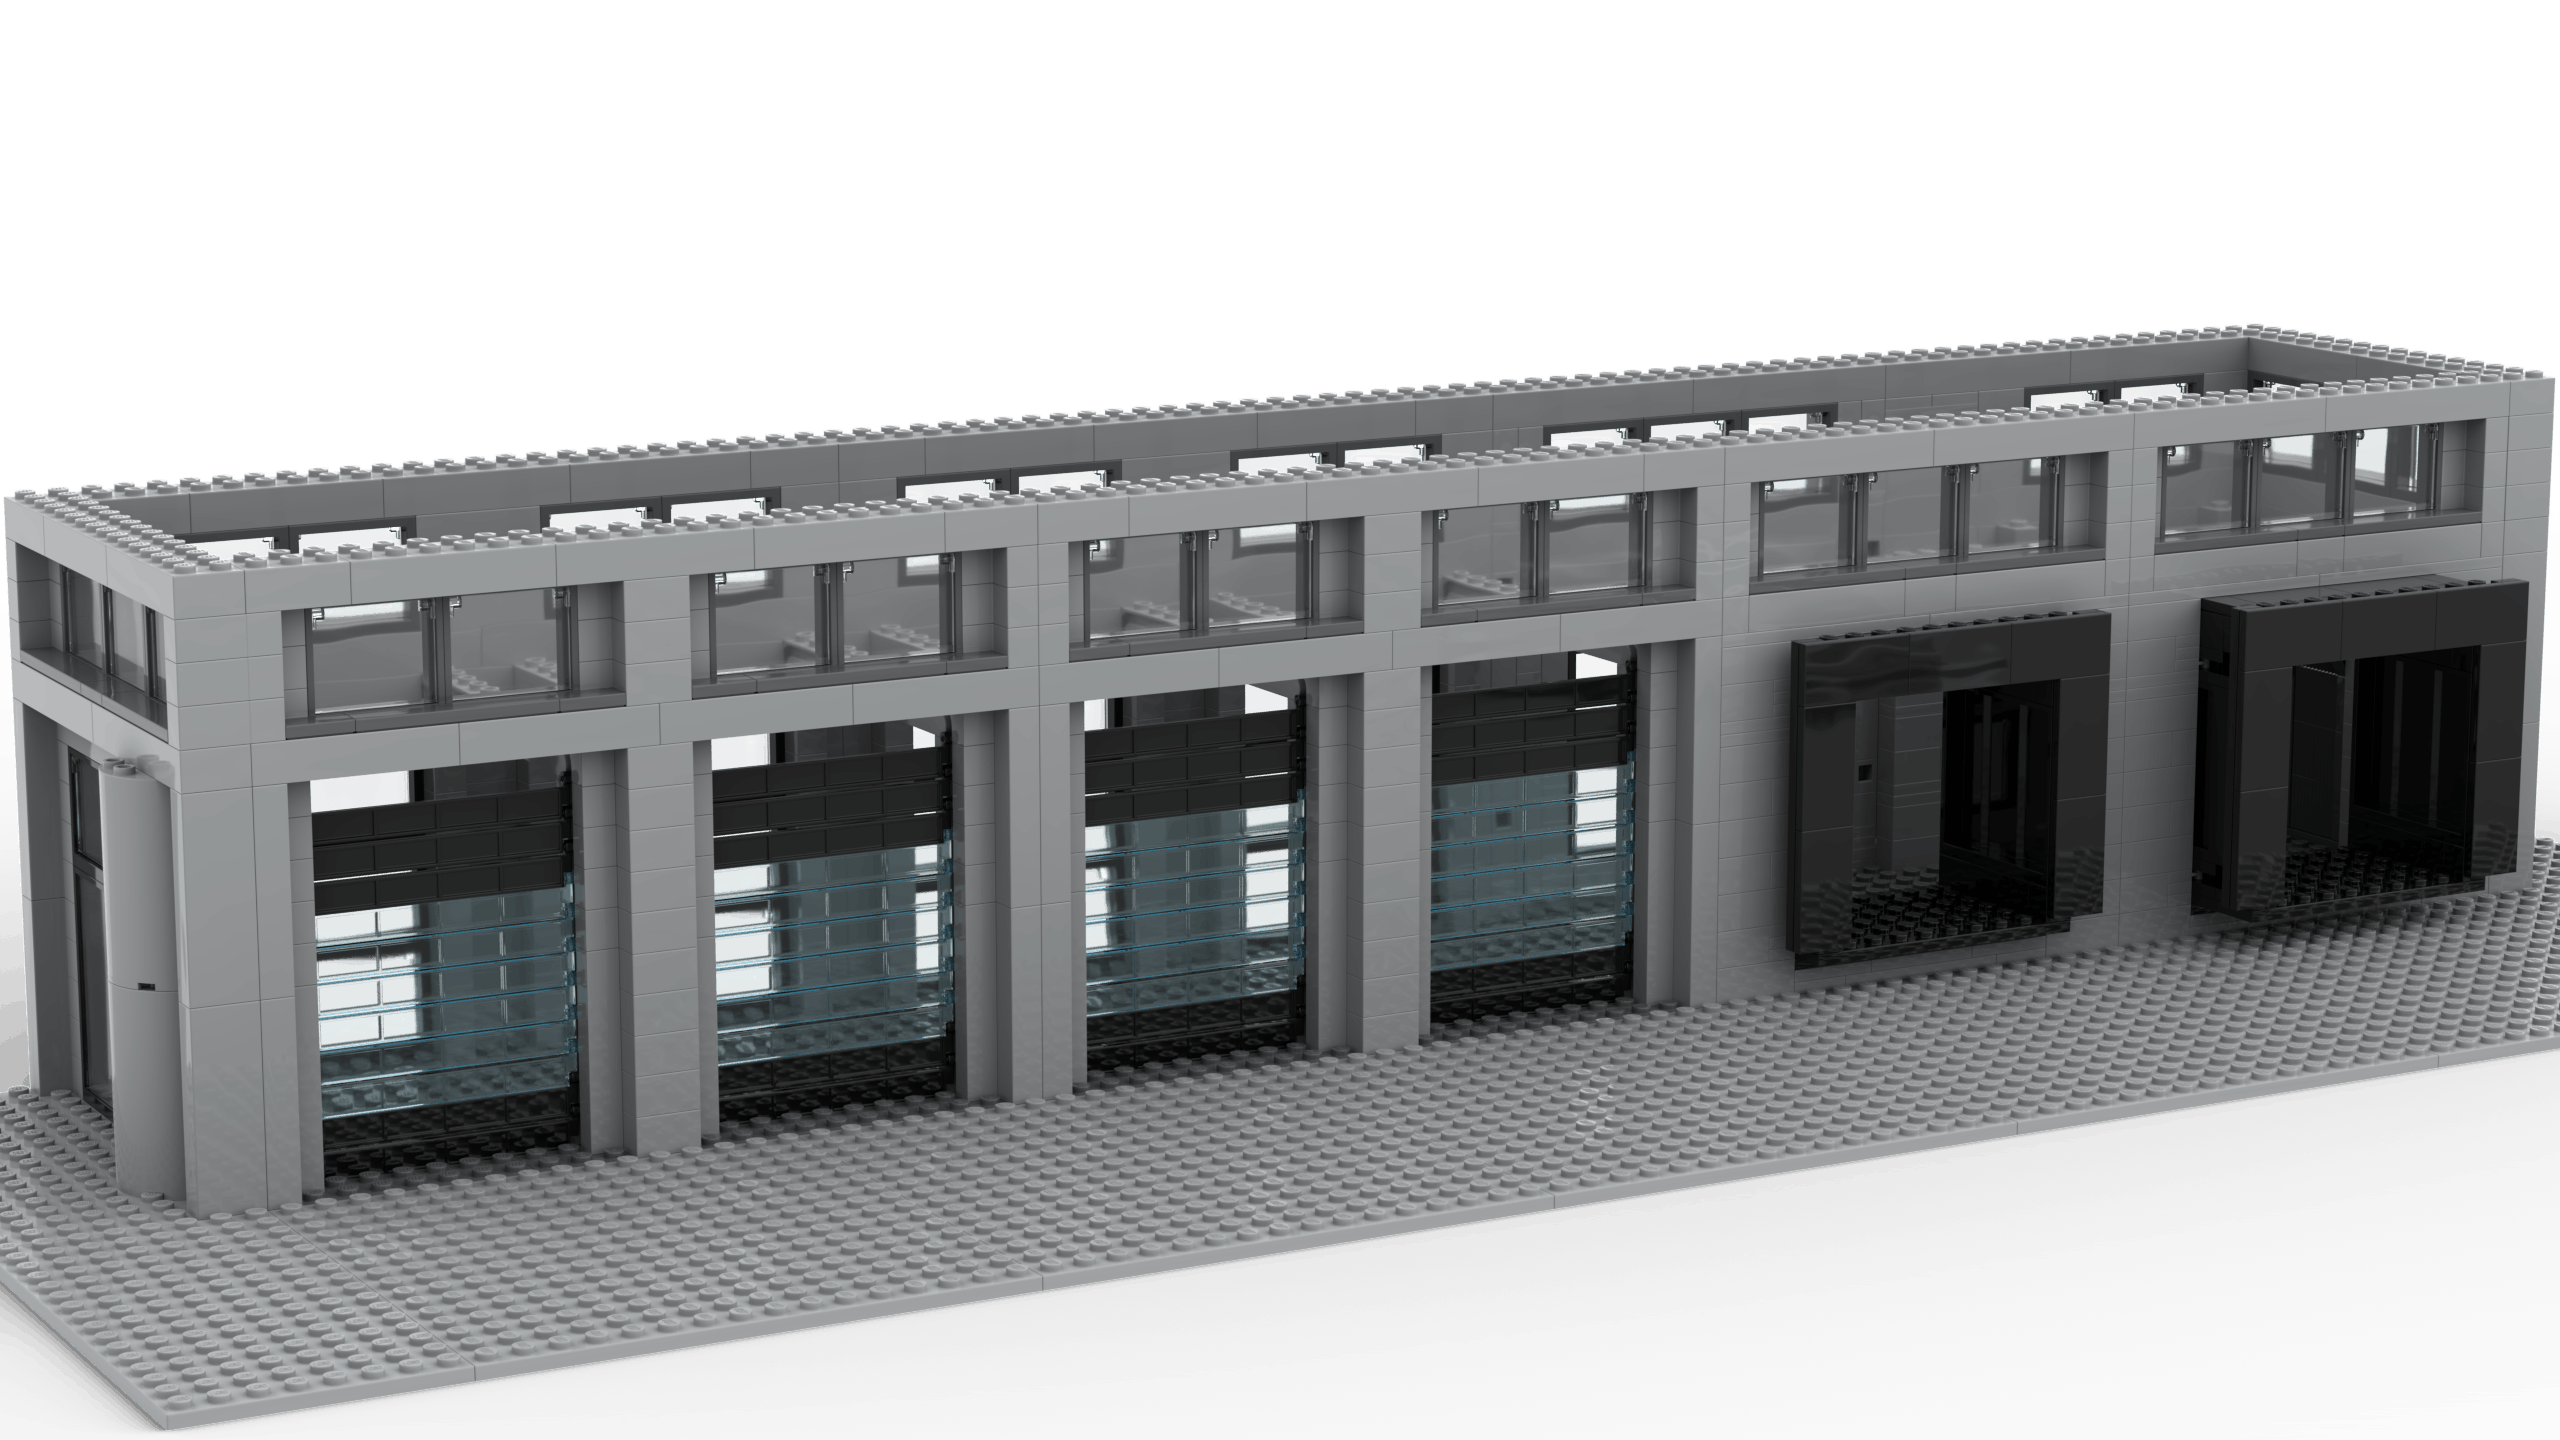 3D render of the Logistics Terminal MOC. Rendered using Stud.io.